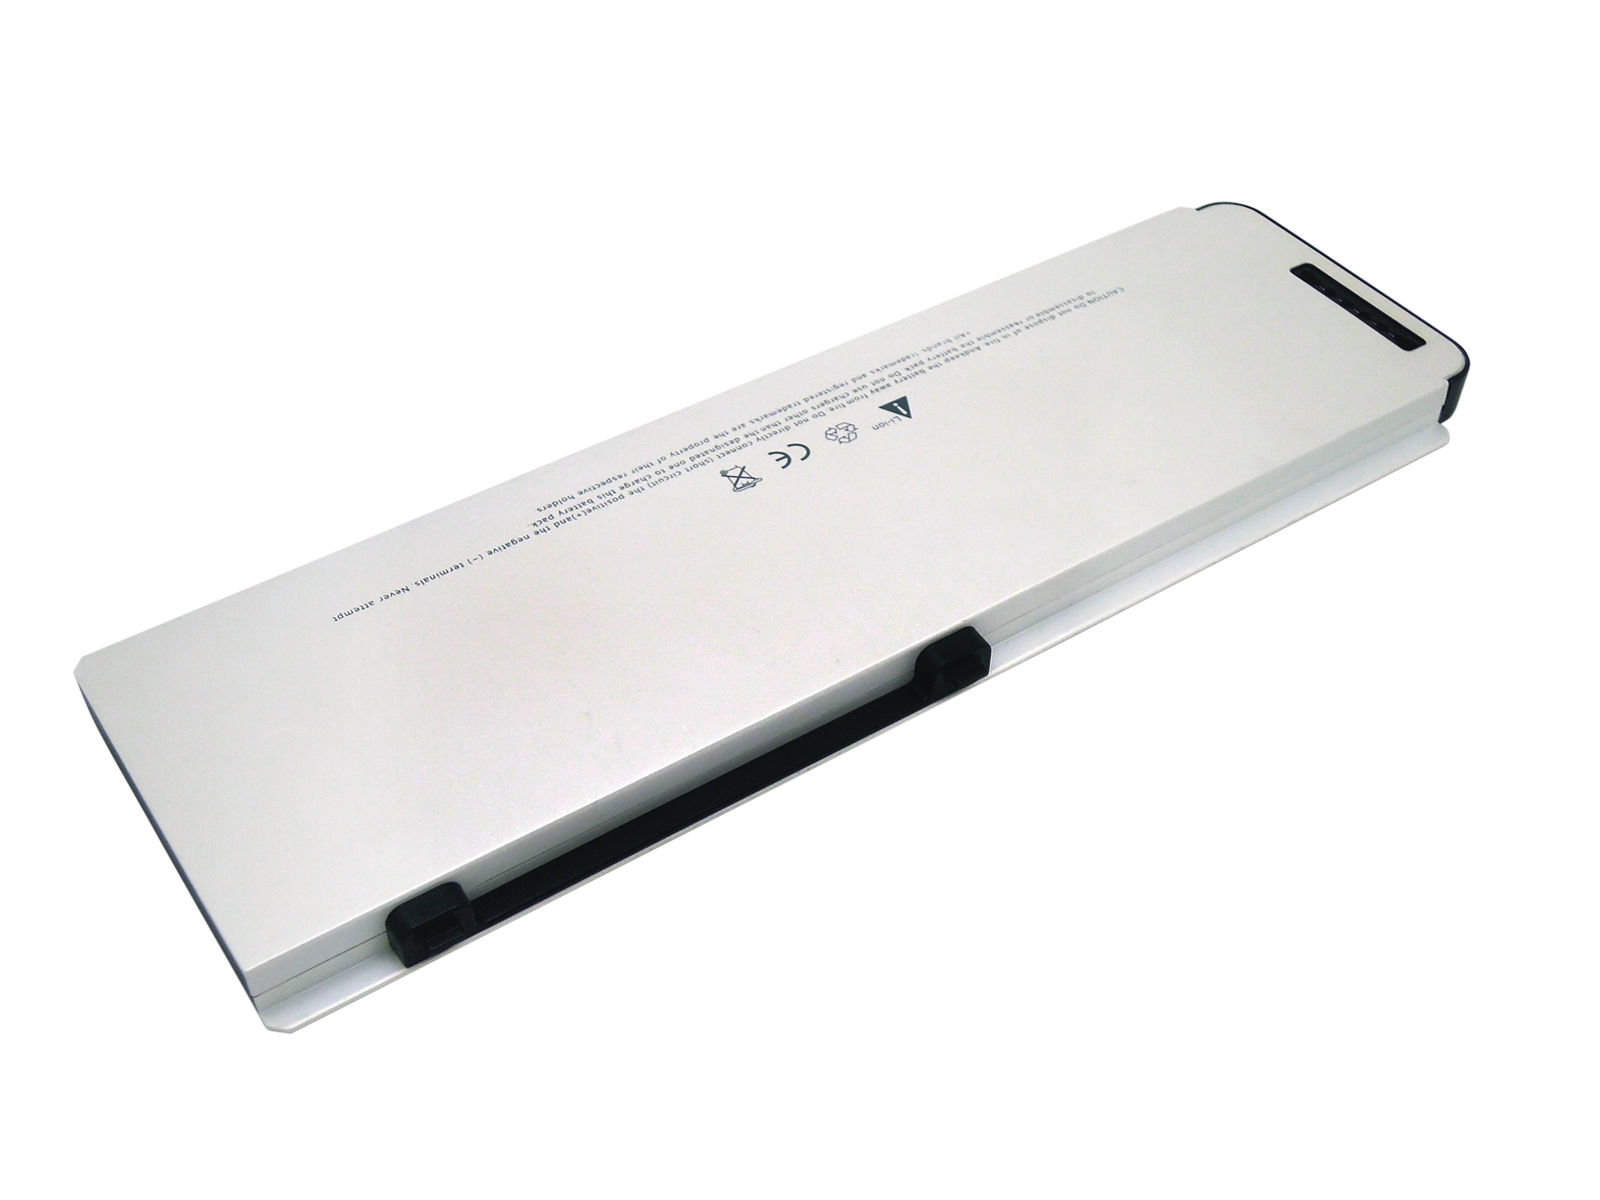 New GHU Battery For Apple battery A1281 for Apple Laptop Pro 15 MB470A